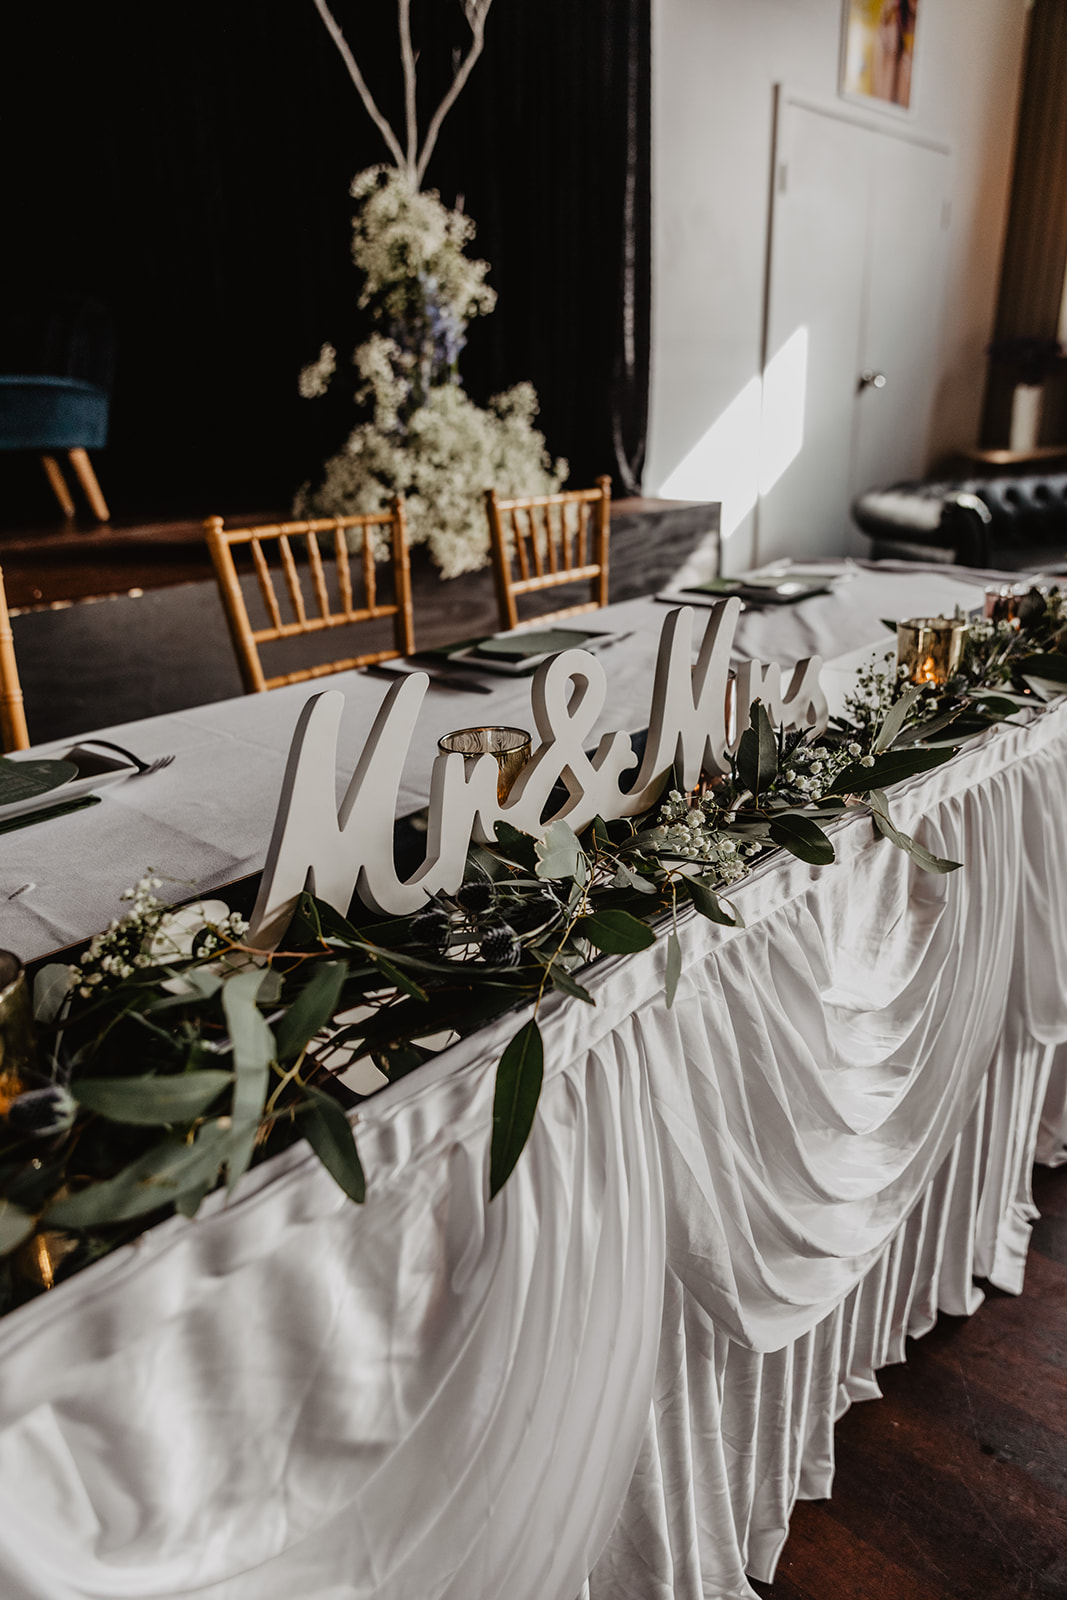 Weddings at The Stirling Arms in Guildford